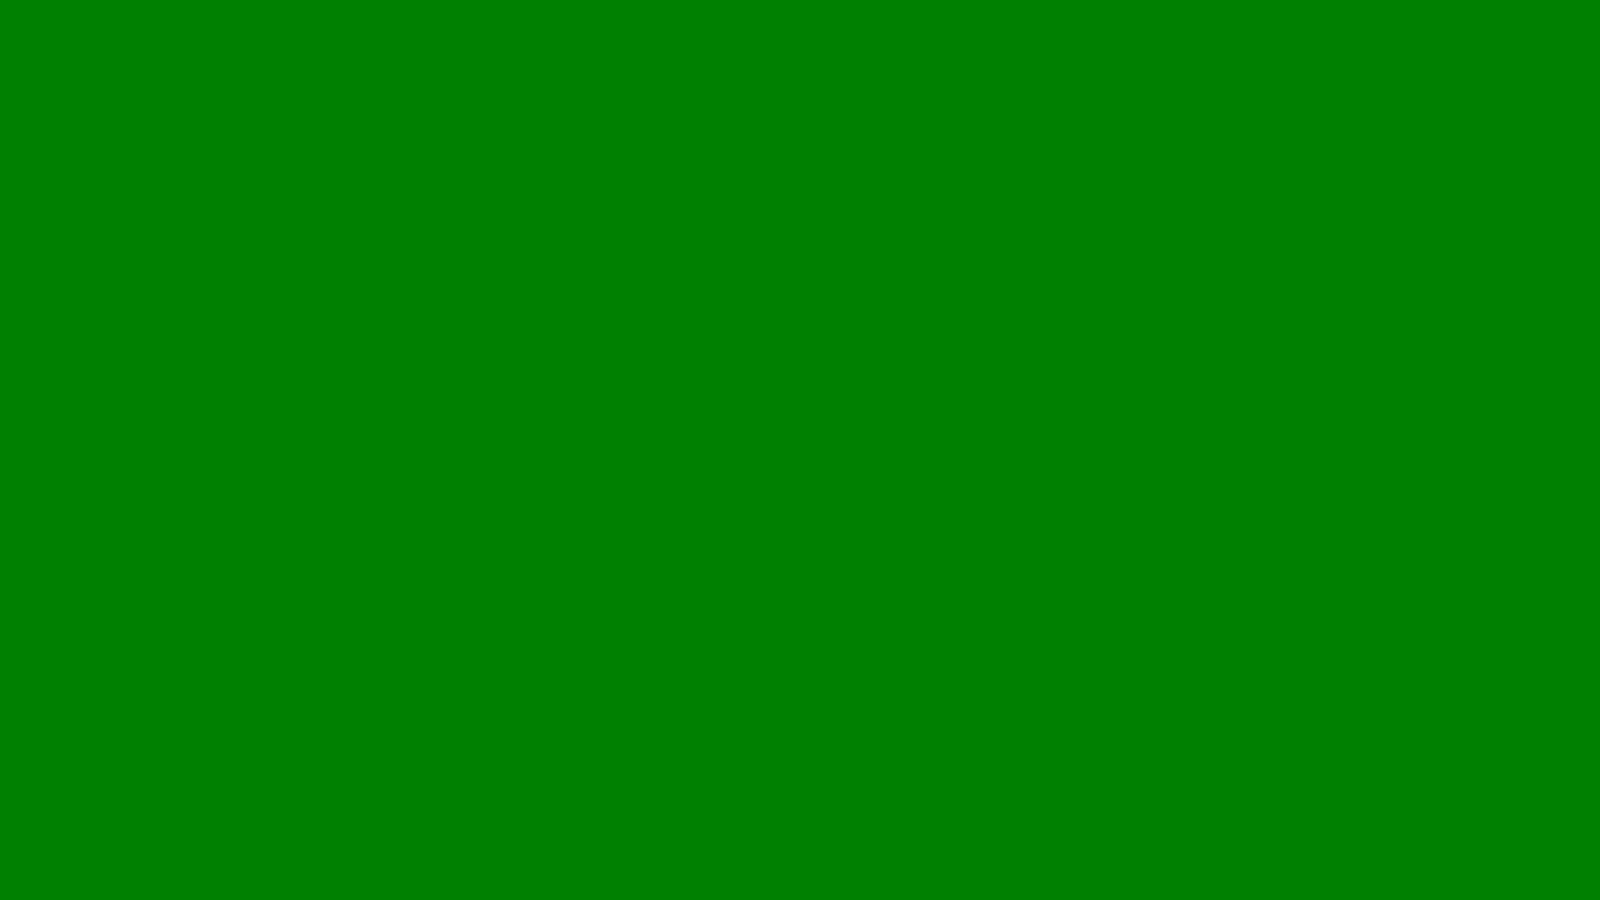 1600x900 Office Green Solid Color Background